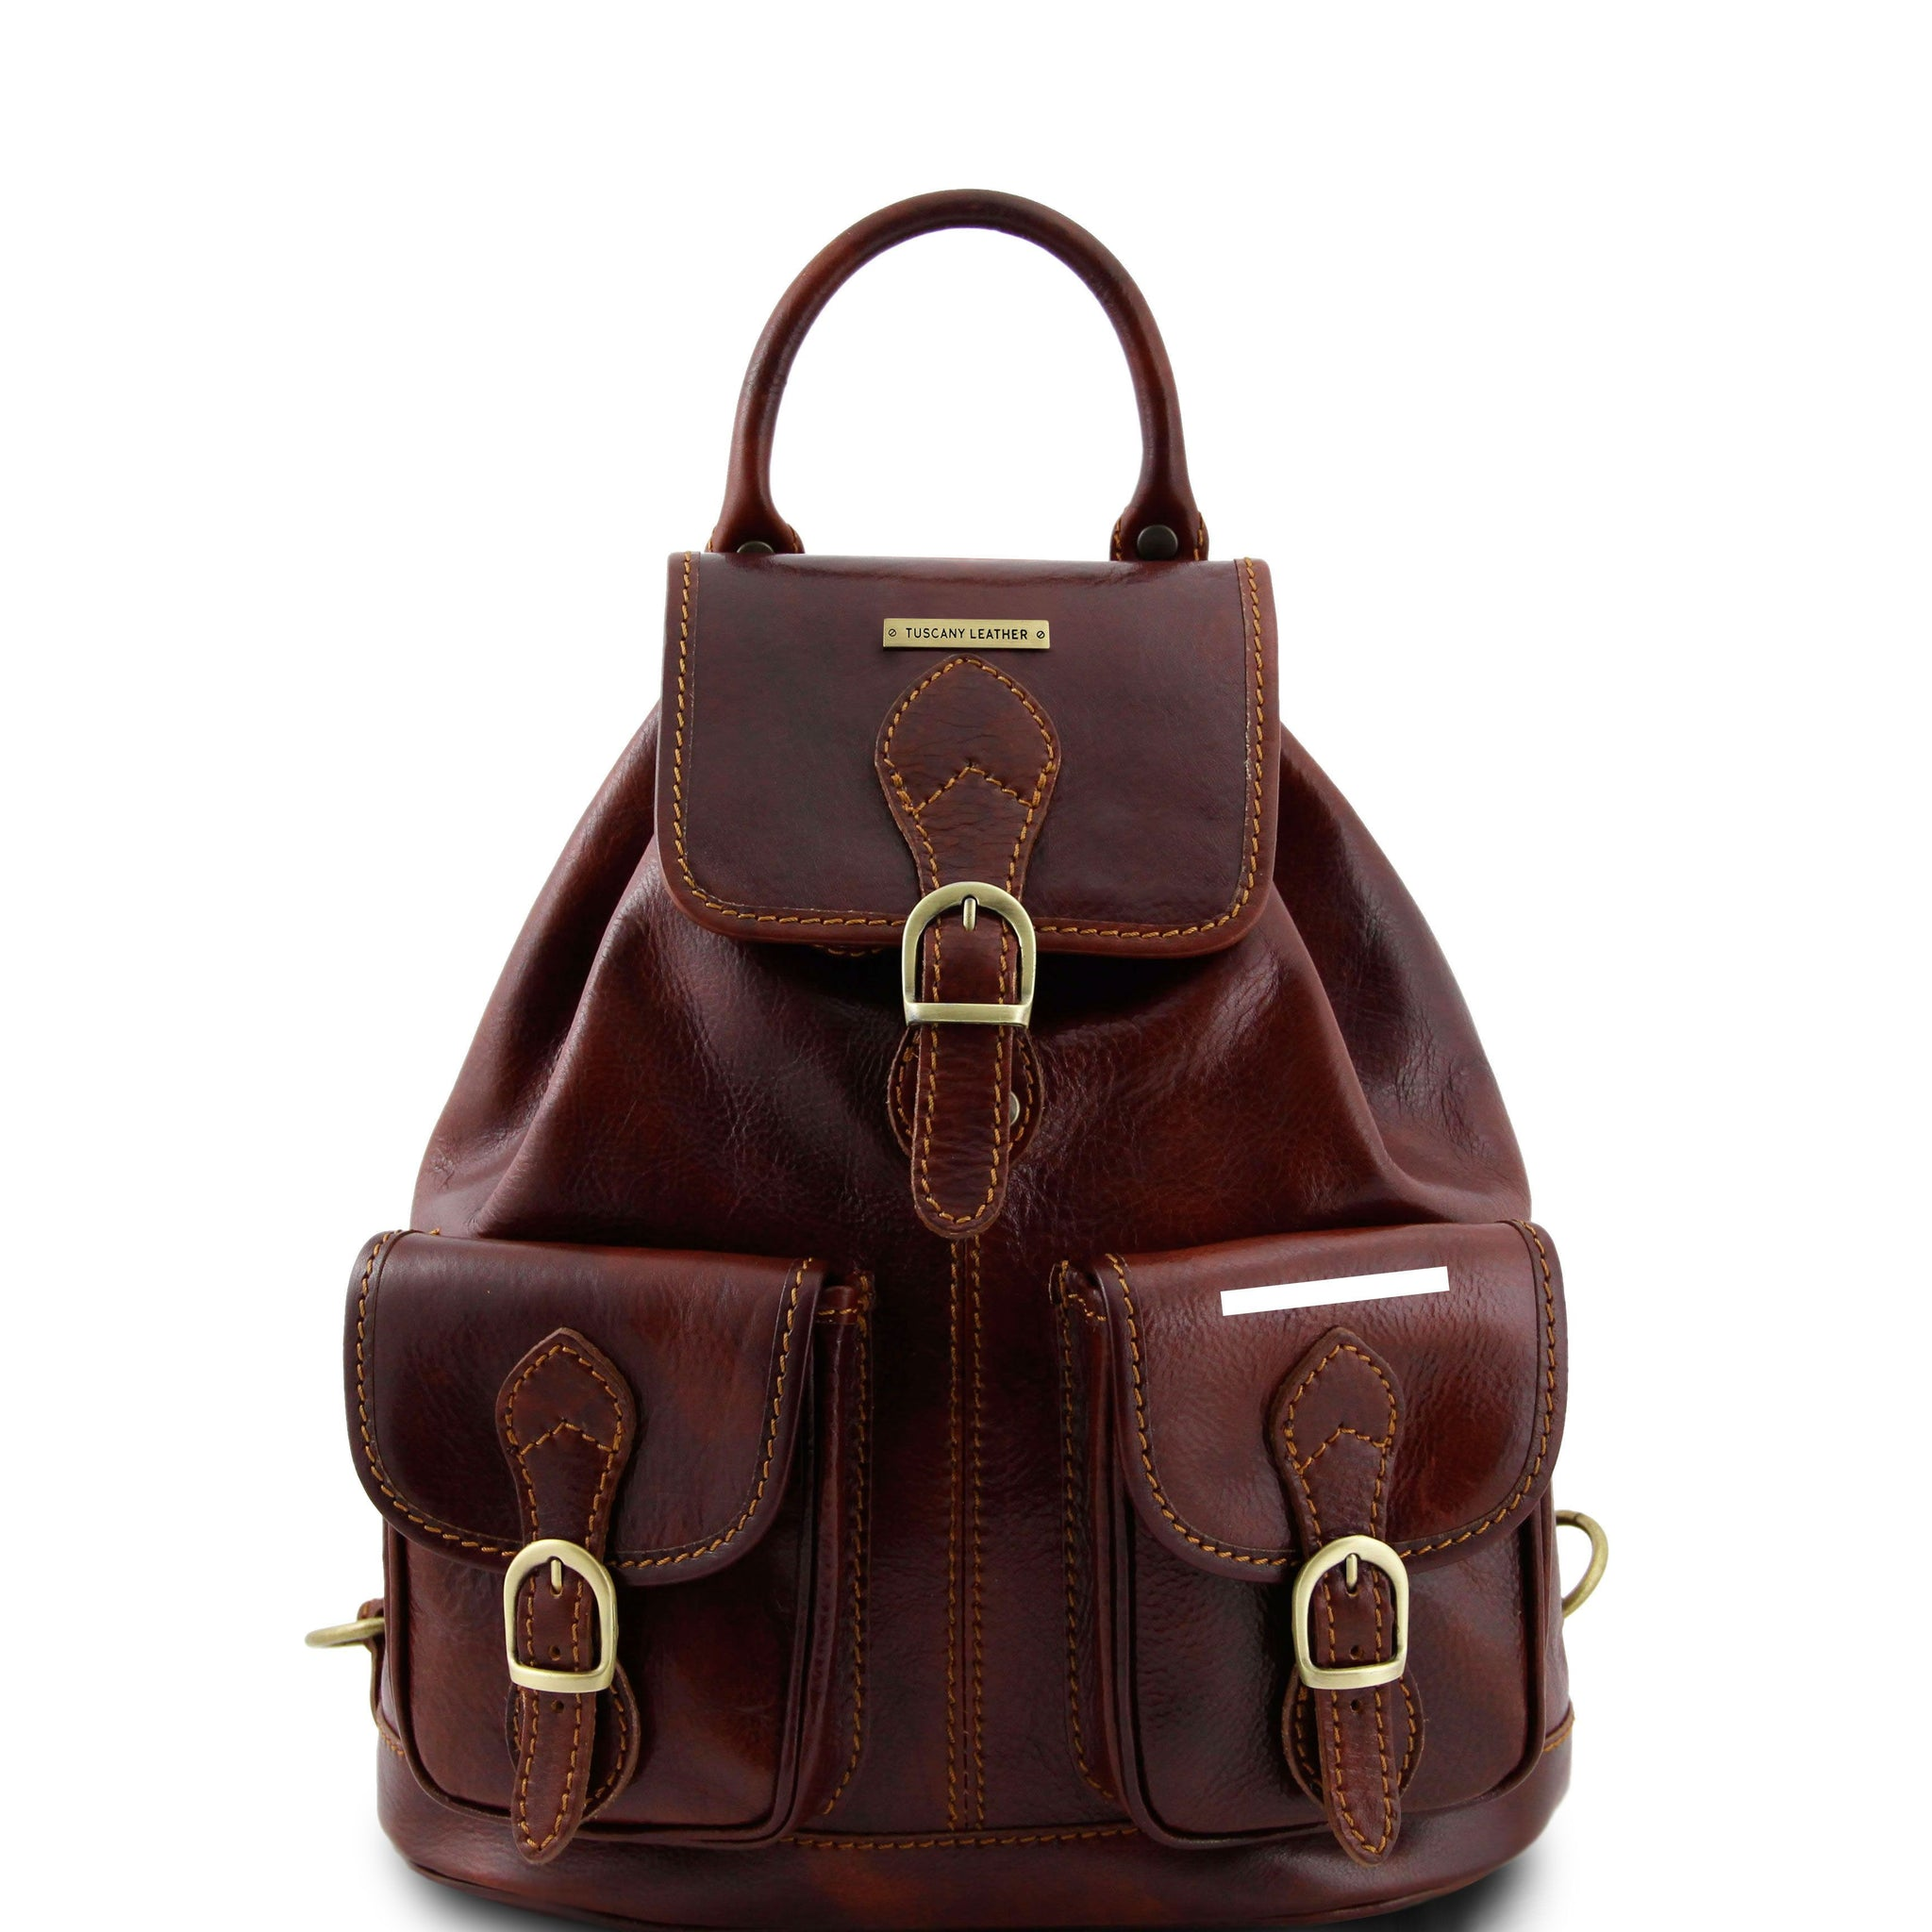 Tuscany Leather 'Tokyo' Leather Backpack Backpack Tuscany Leather Brown